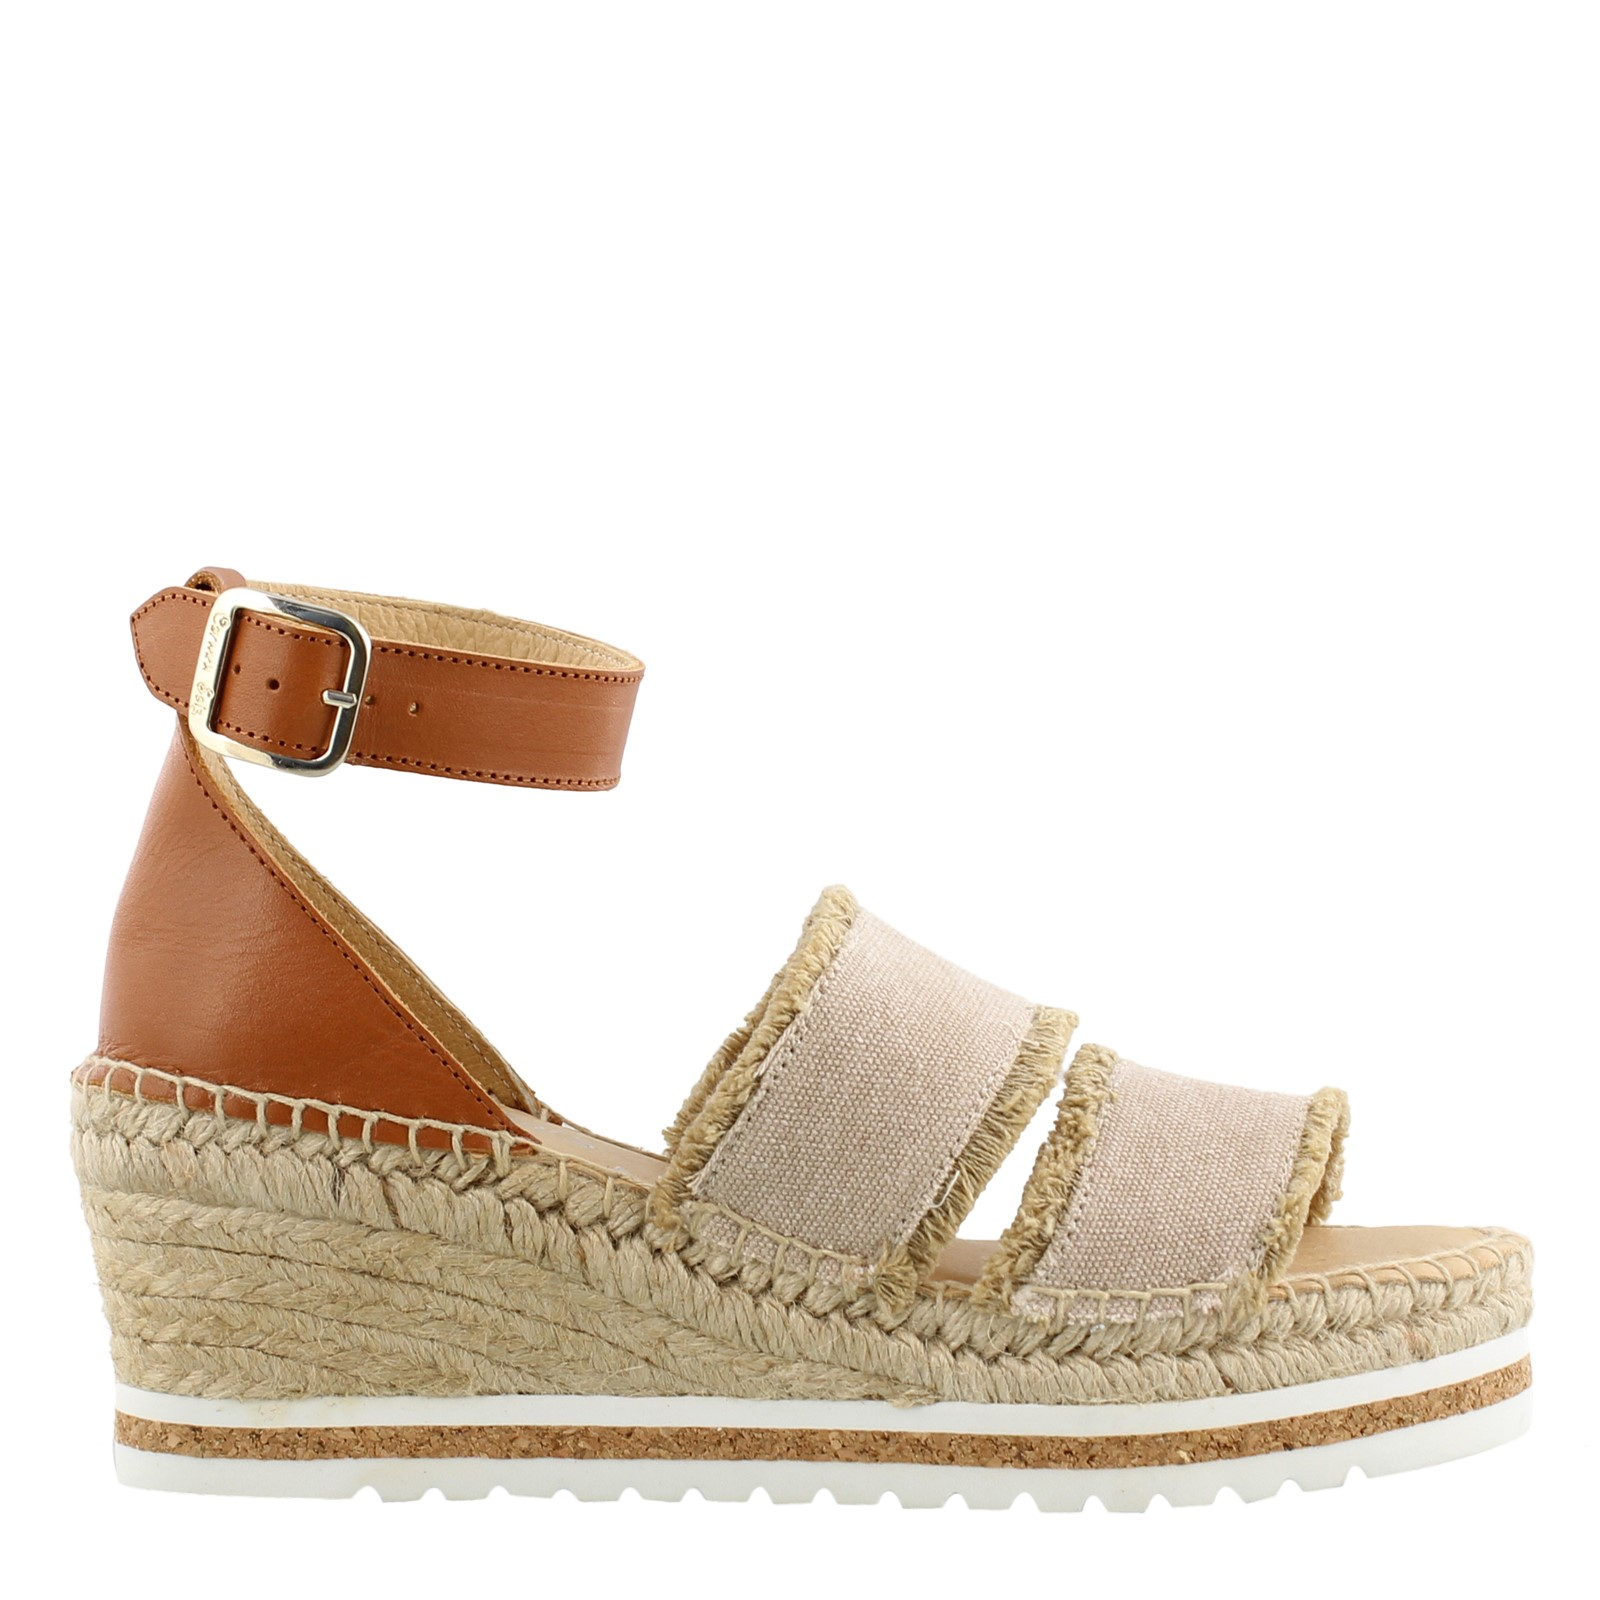 Women's Carmen Saiz, CS19-10378 Wedge Sandals